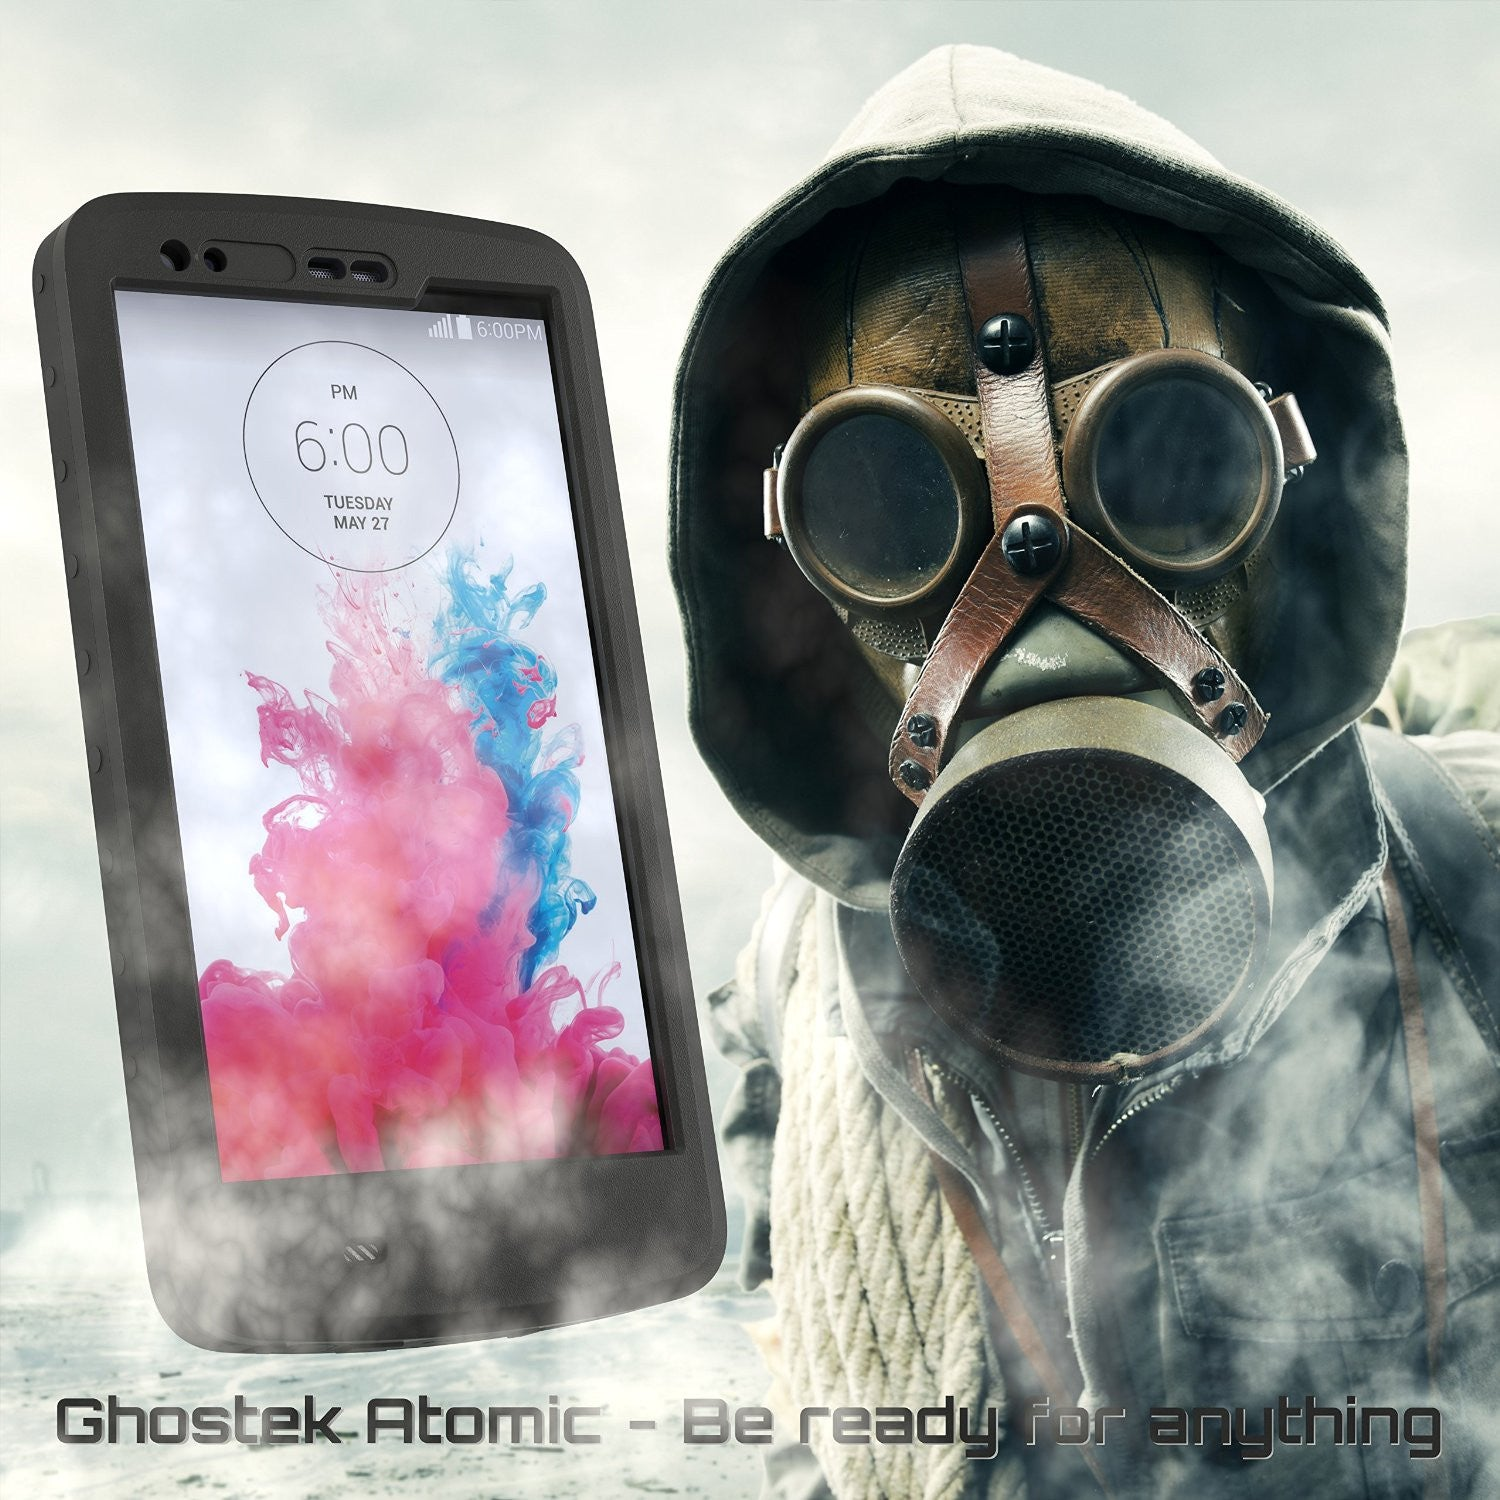 LG G3 Waterproof Case, Ghostek Atomic Black W/ Attached Screen Protector Fitted for LG G3